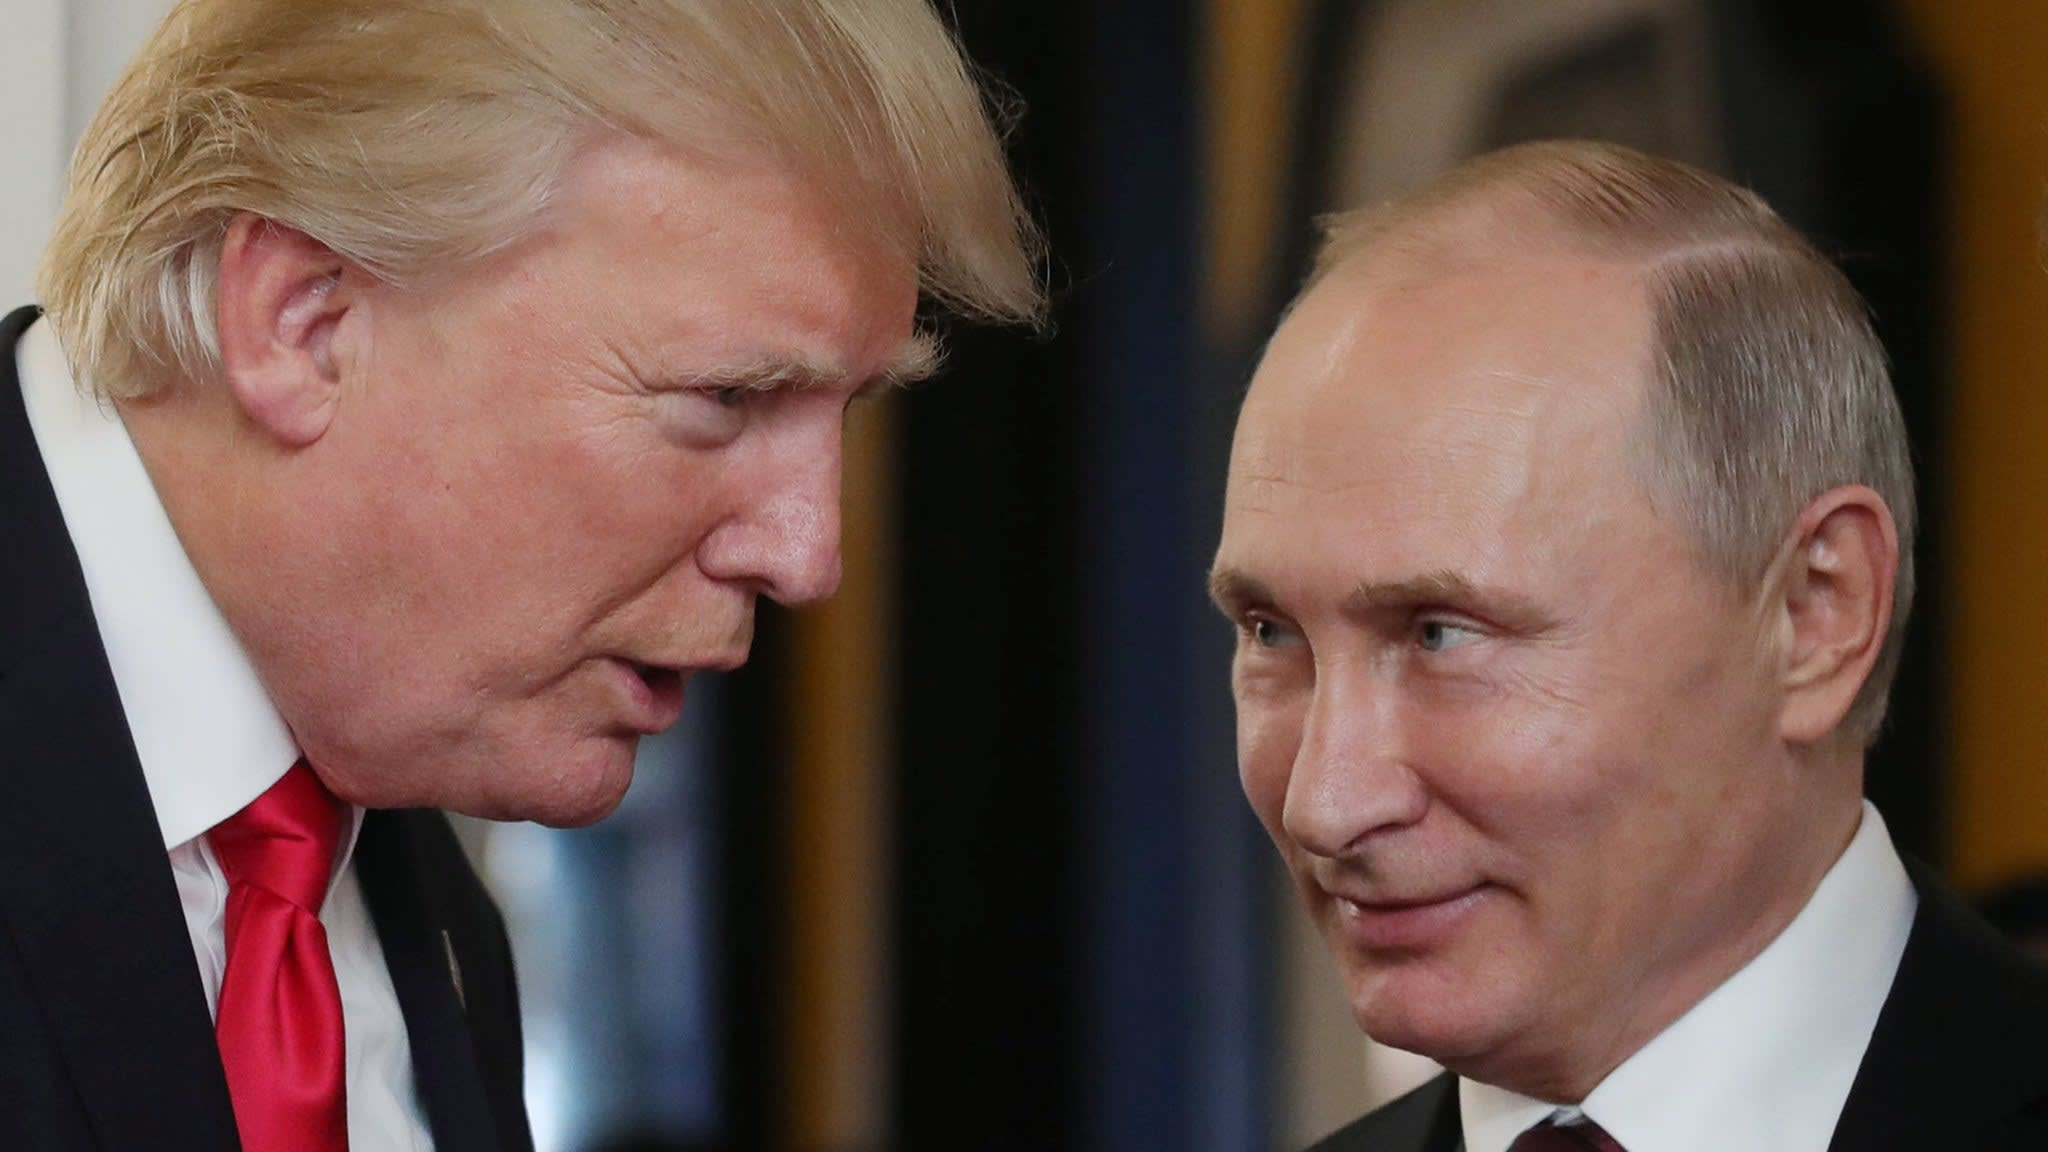 Trump and Putin prepare for Helsinki summit against charged backdrop